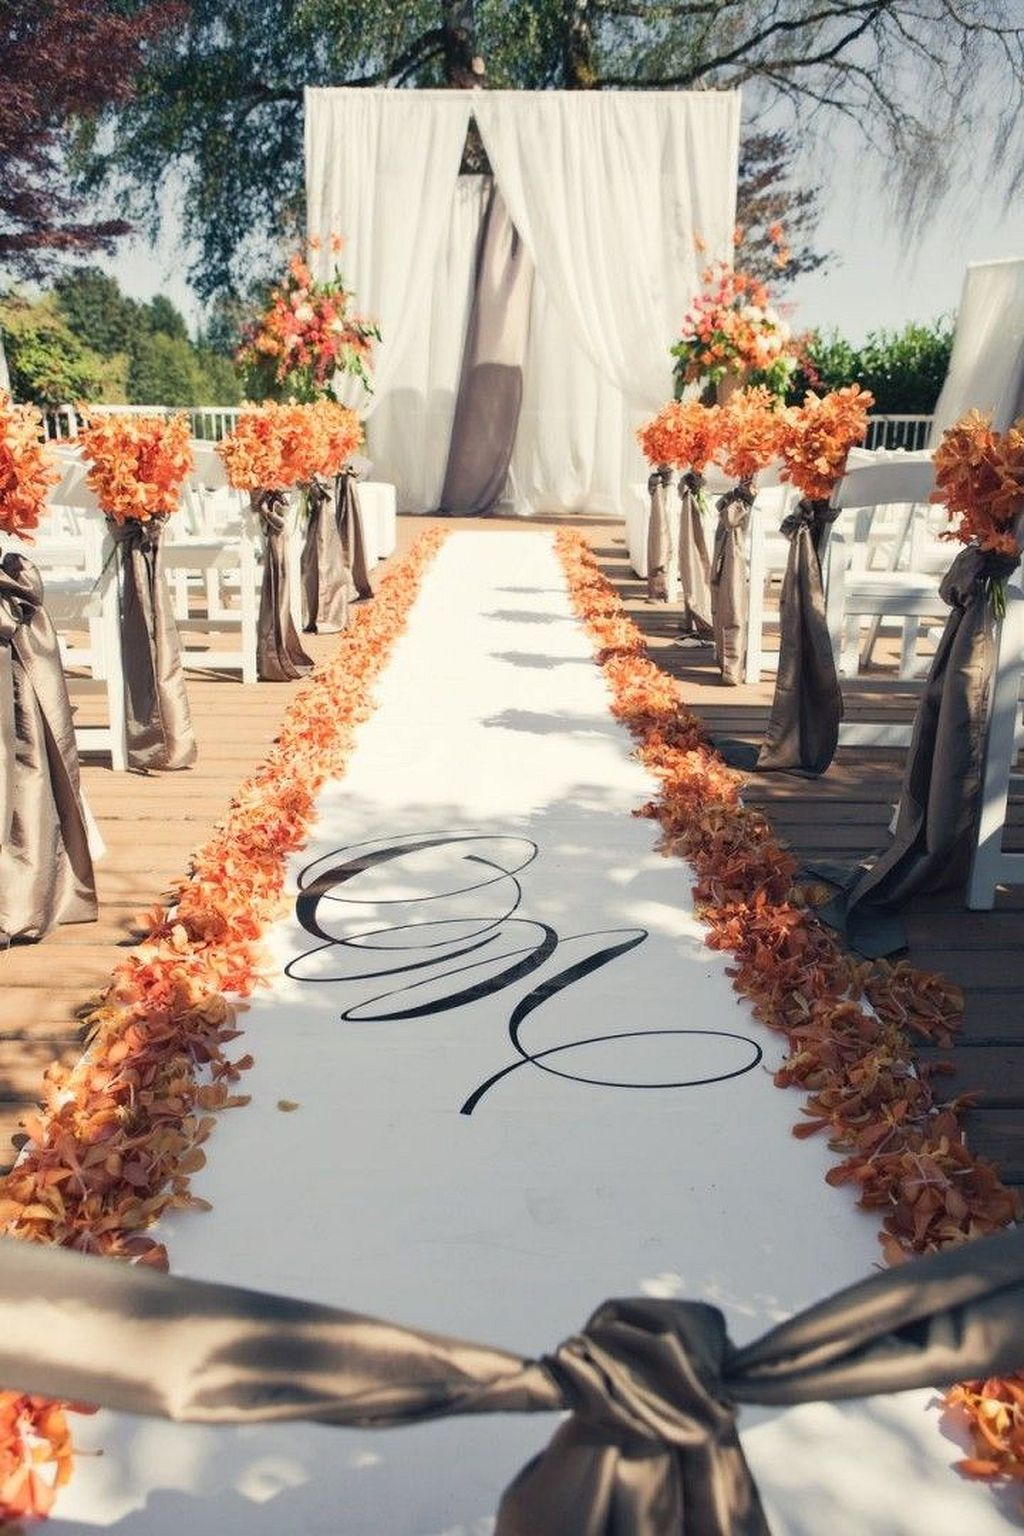 Great 40+ Fall Wedding Theme Ideas https://weddmagz.com/40-fall-wedding-theme-ideas/